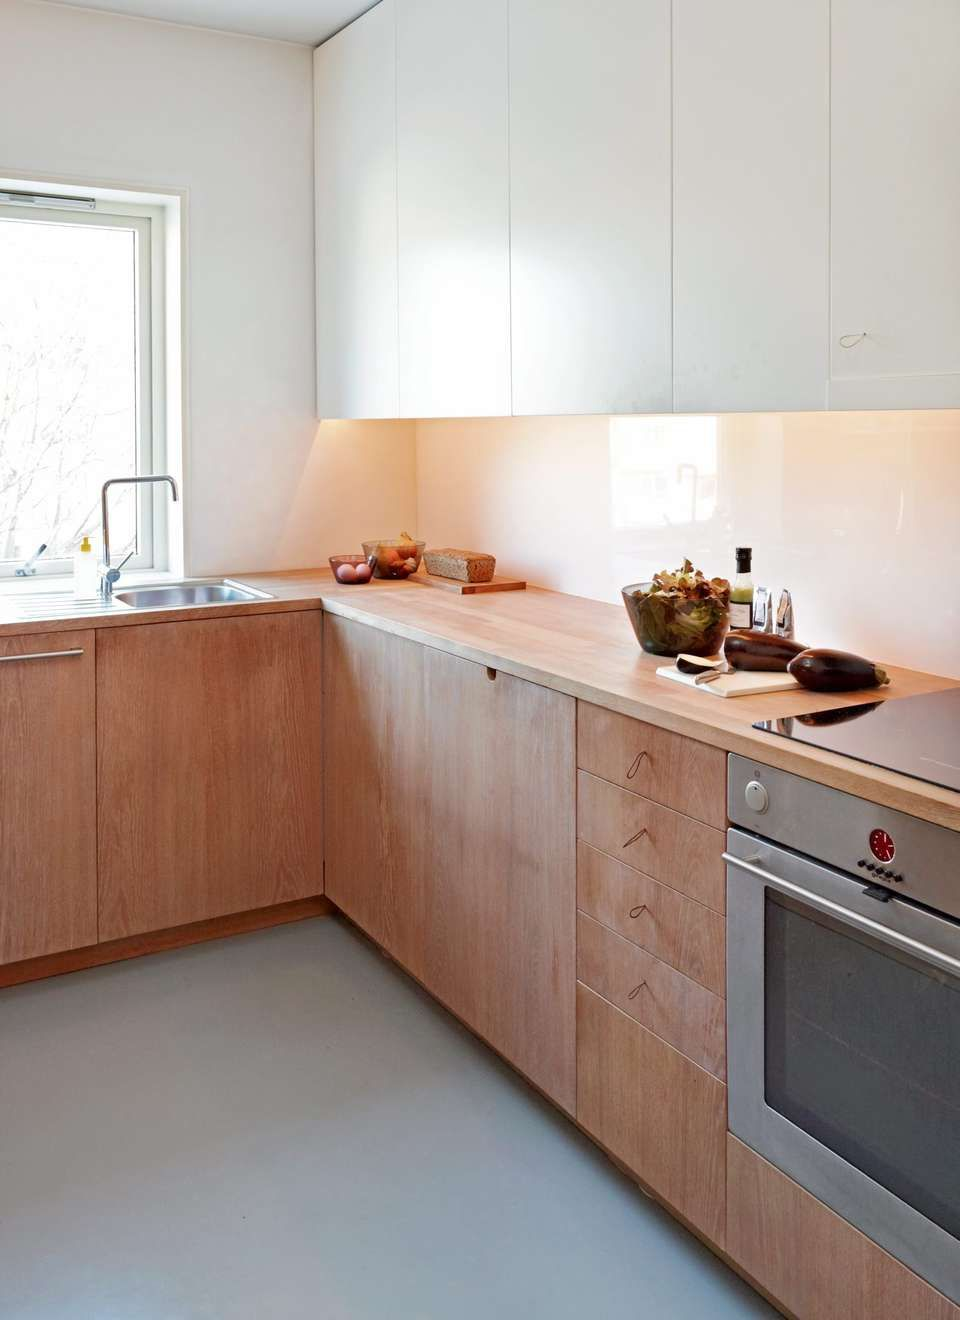 kitchen, seamless floor, white gloss backplash, white wall, white top cabinet, wooden kitchen cabinet, wooden counter top